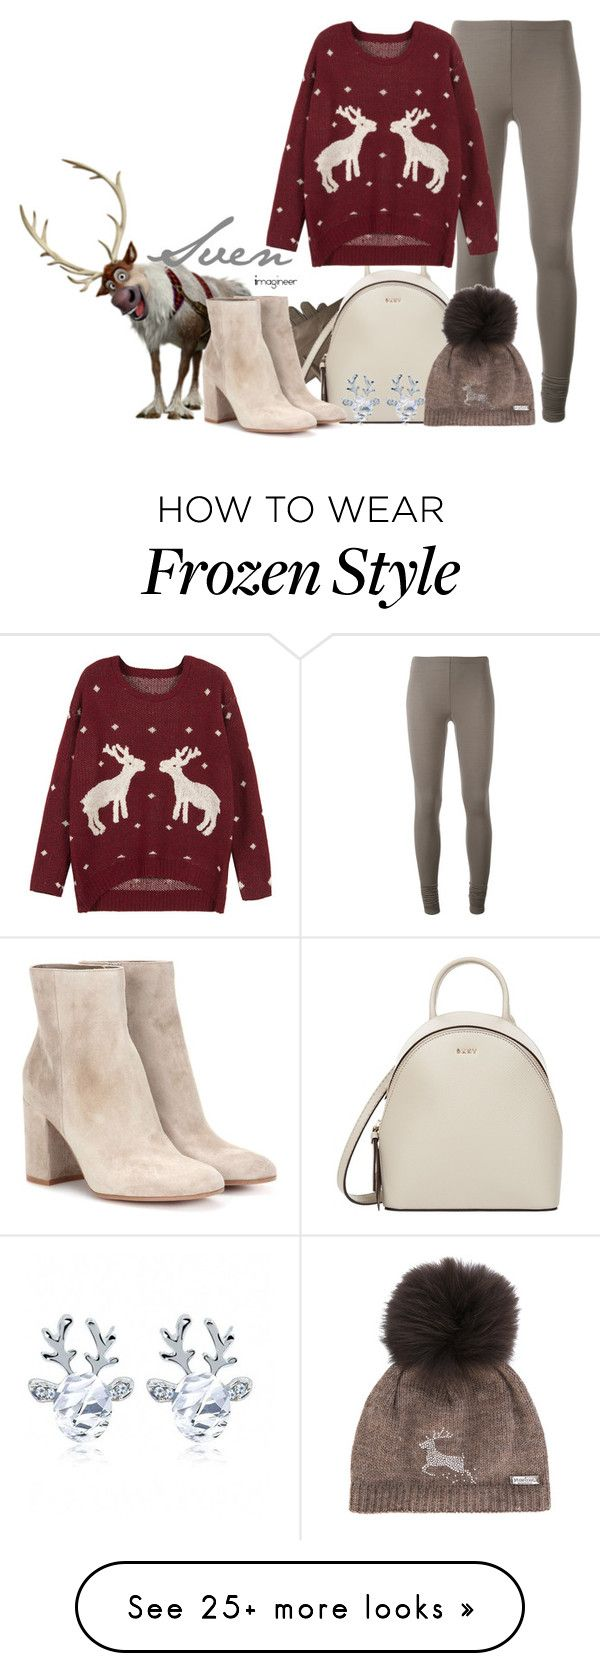 """Sven (Frozen)"" by claucrasoda on Polyvore featuring Carolina Herrera, Rick Owens Lilies, DKNY, WithChic, Gianvito Rossi, Norton, christmassweater and disneychristmas"